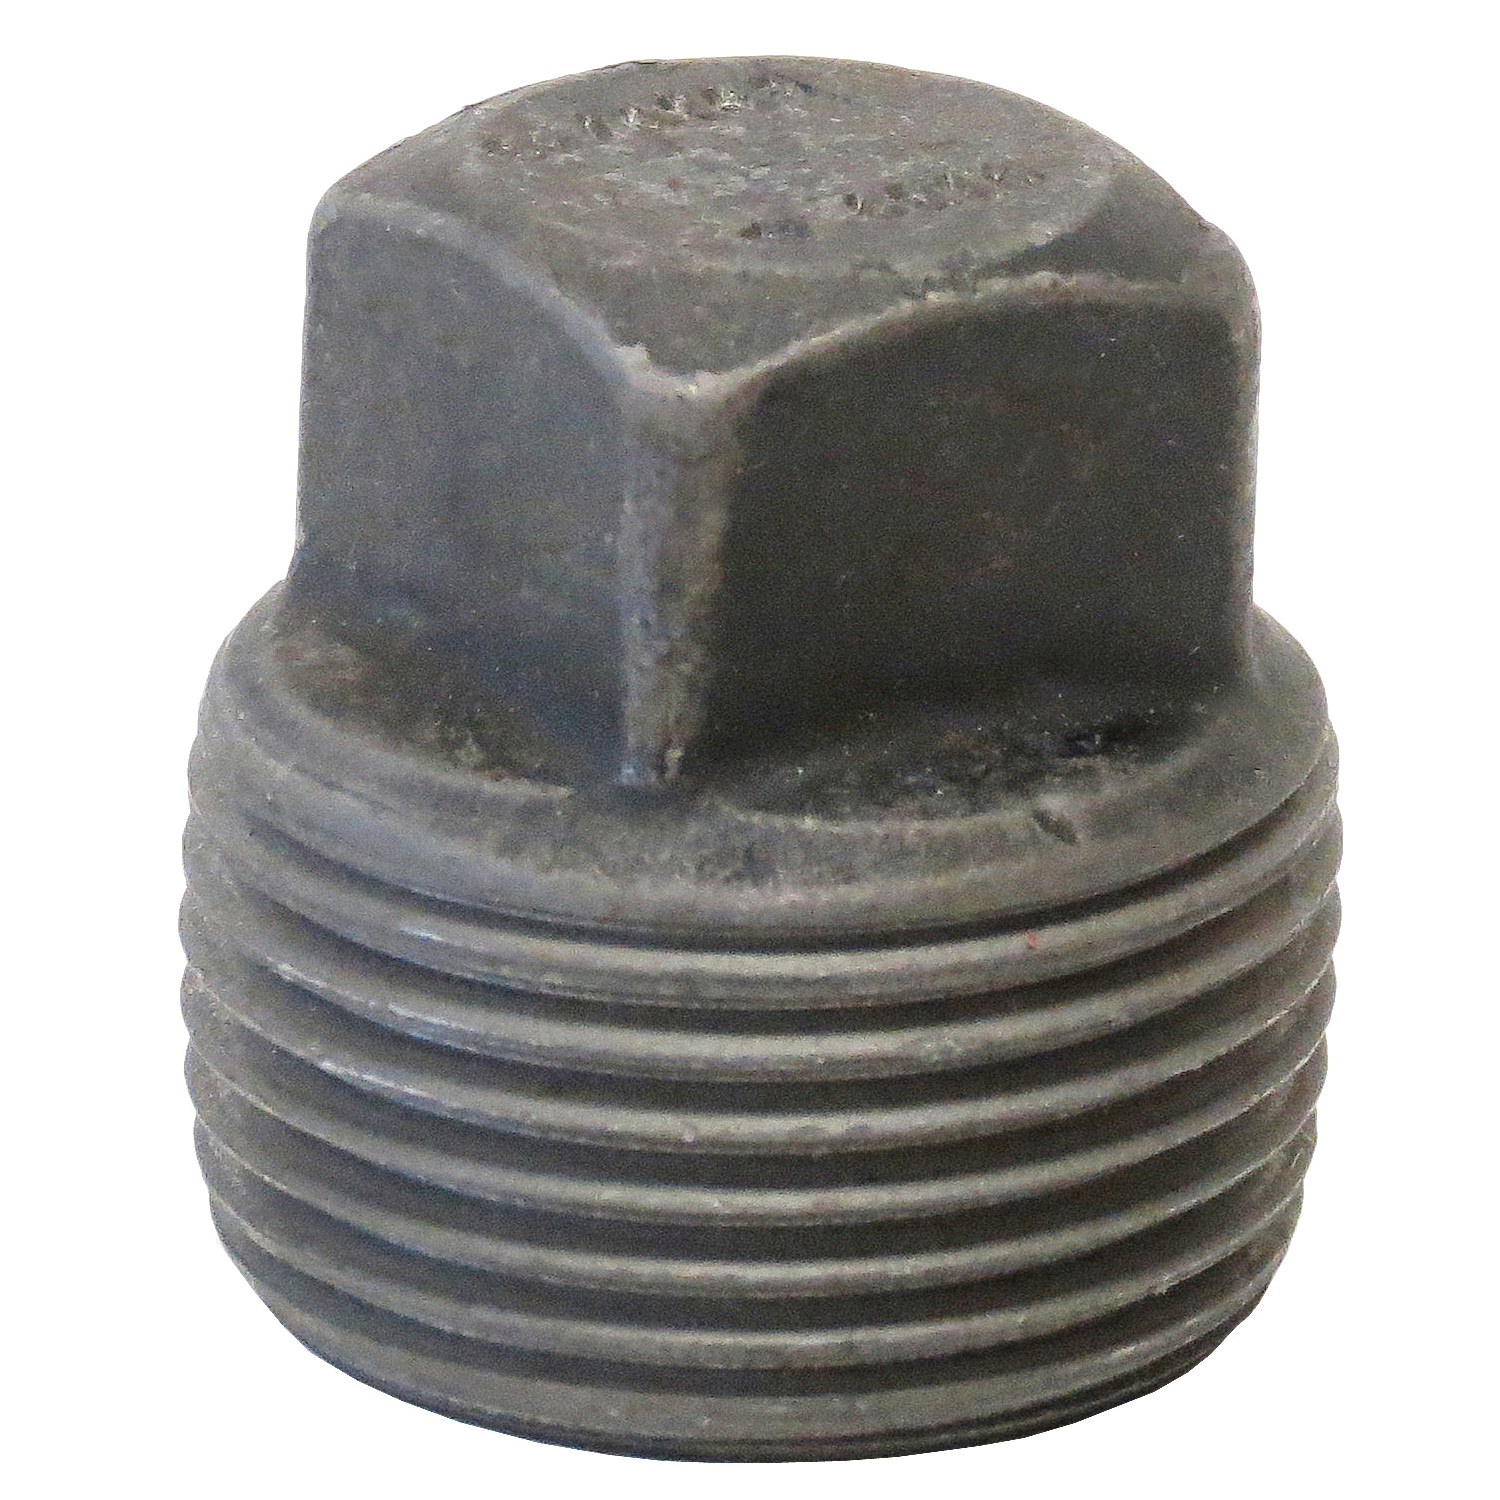 Anvil® 0361301609 FIG 2122 Square Head Pipe Plug, 1-1/2 in Nominal, MNPT End Style, 3000 lb, Steel, Black Oxide, Domestic